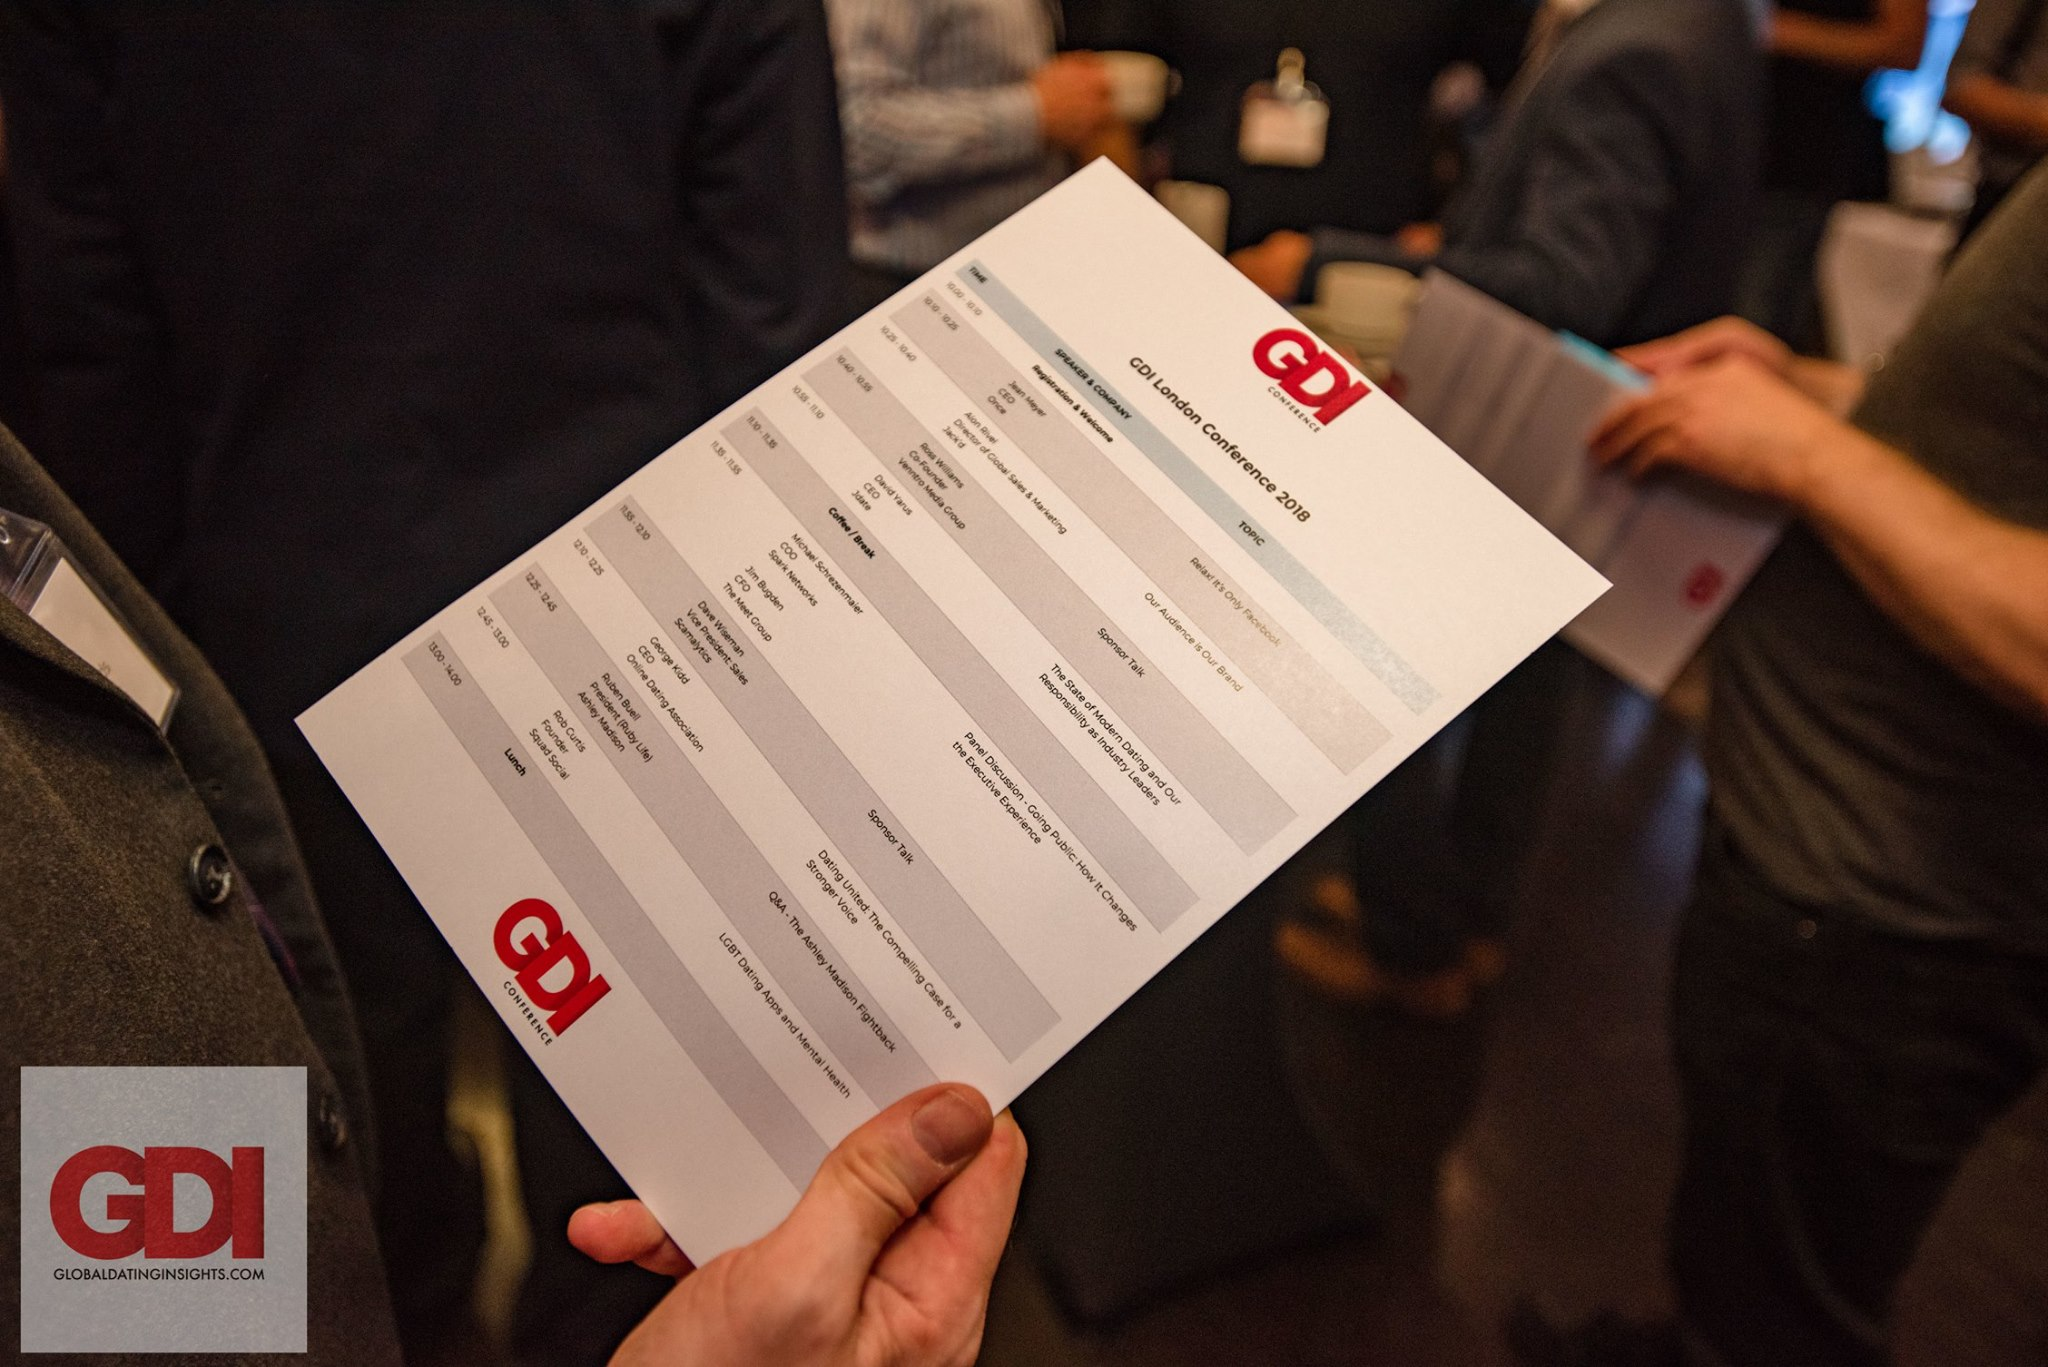 GDI Postpones October's London Conference Due to COVID-19 Uncertainty